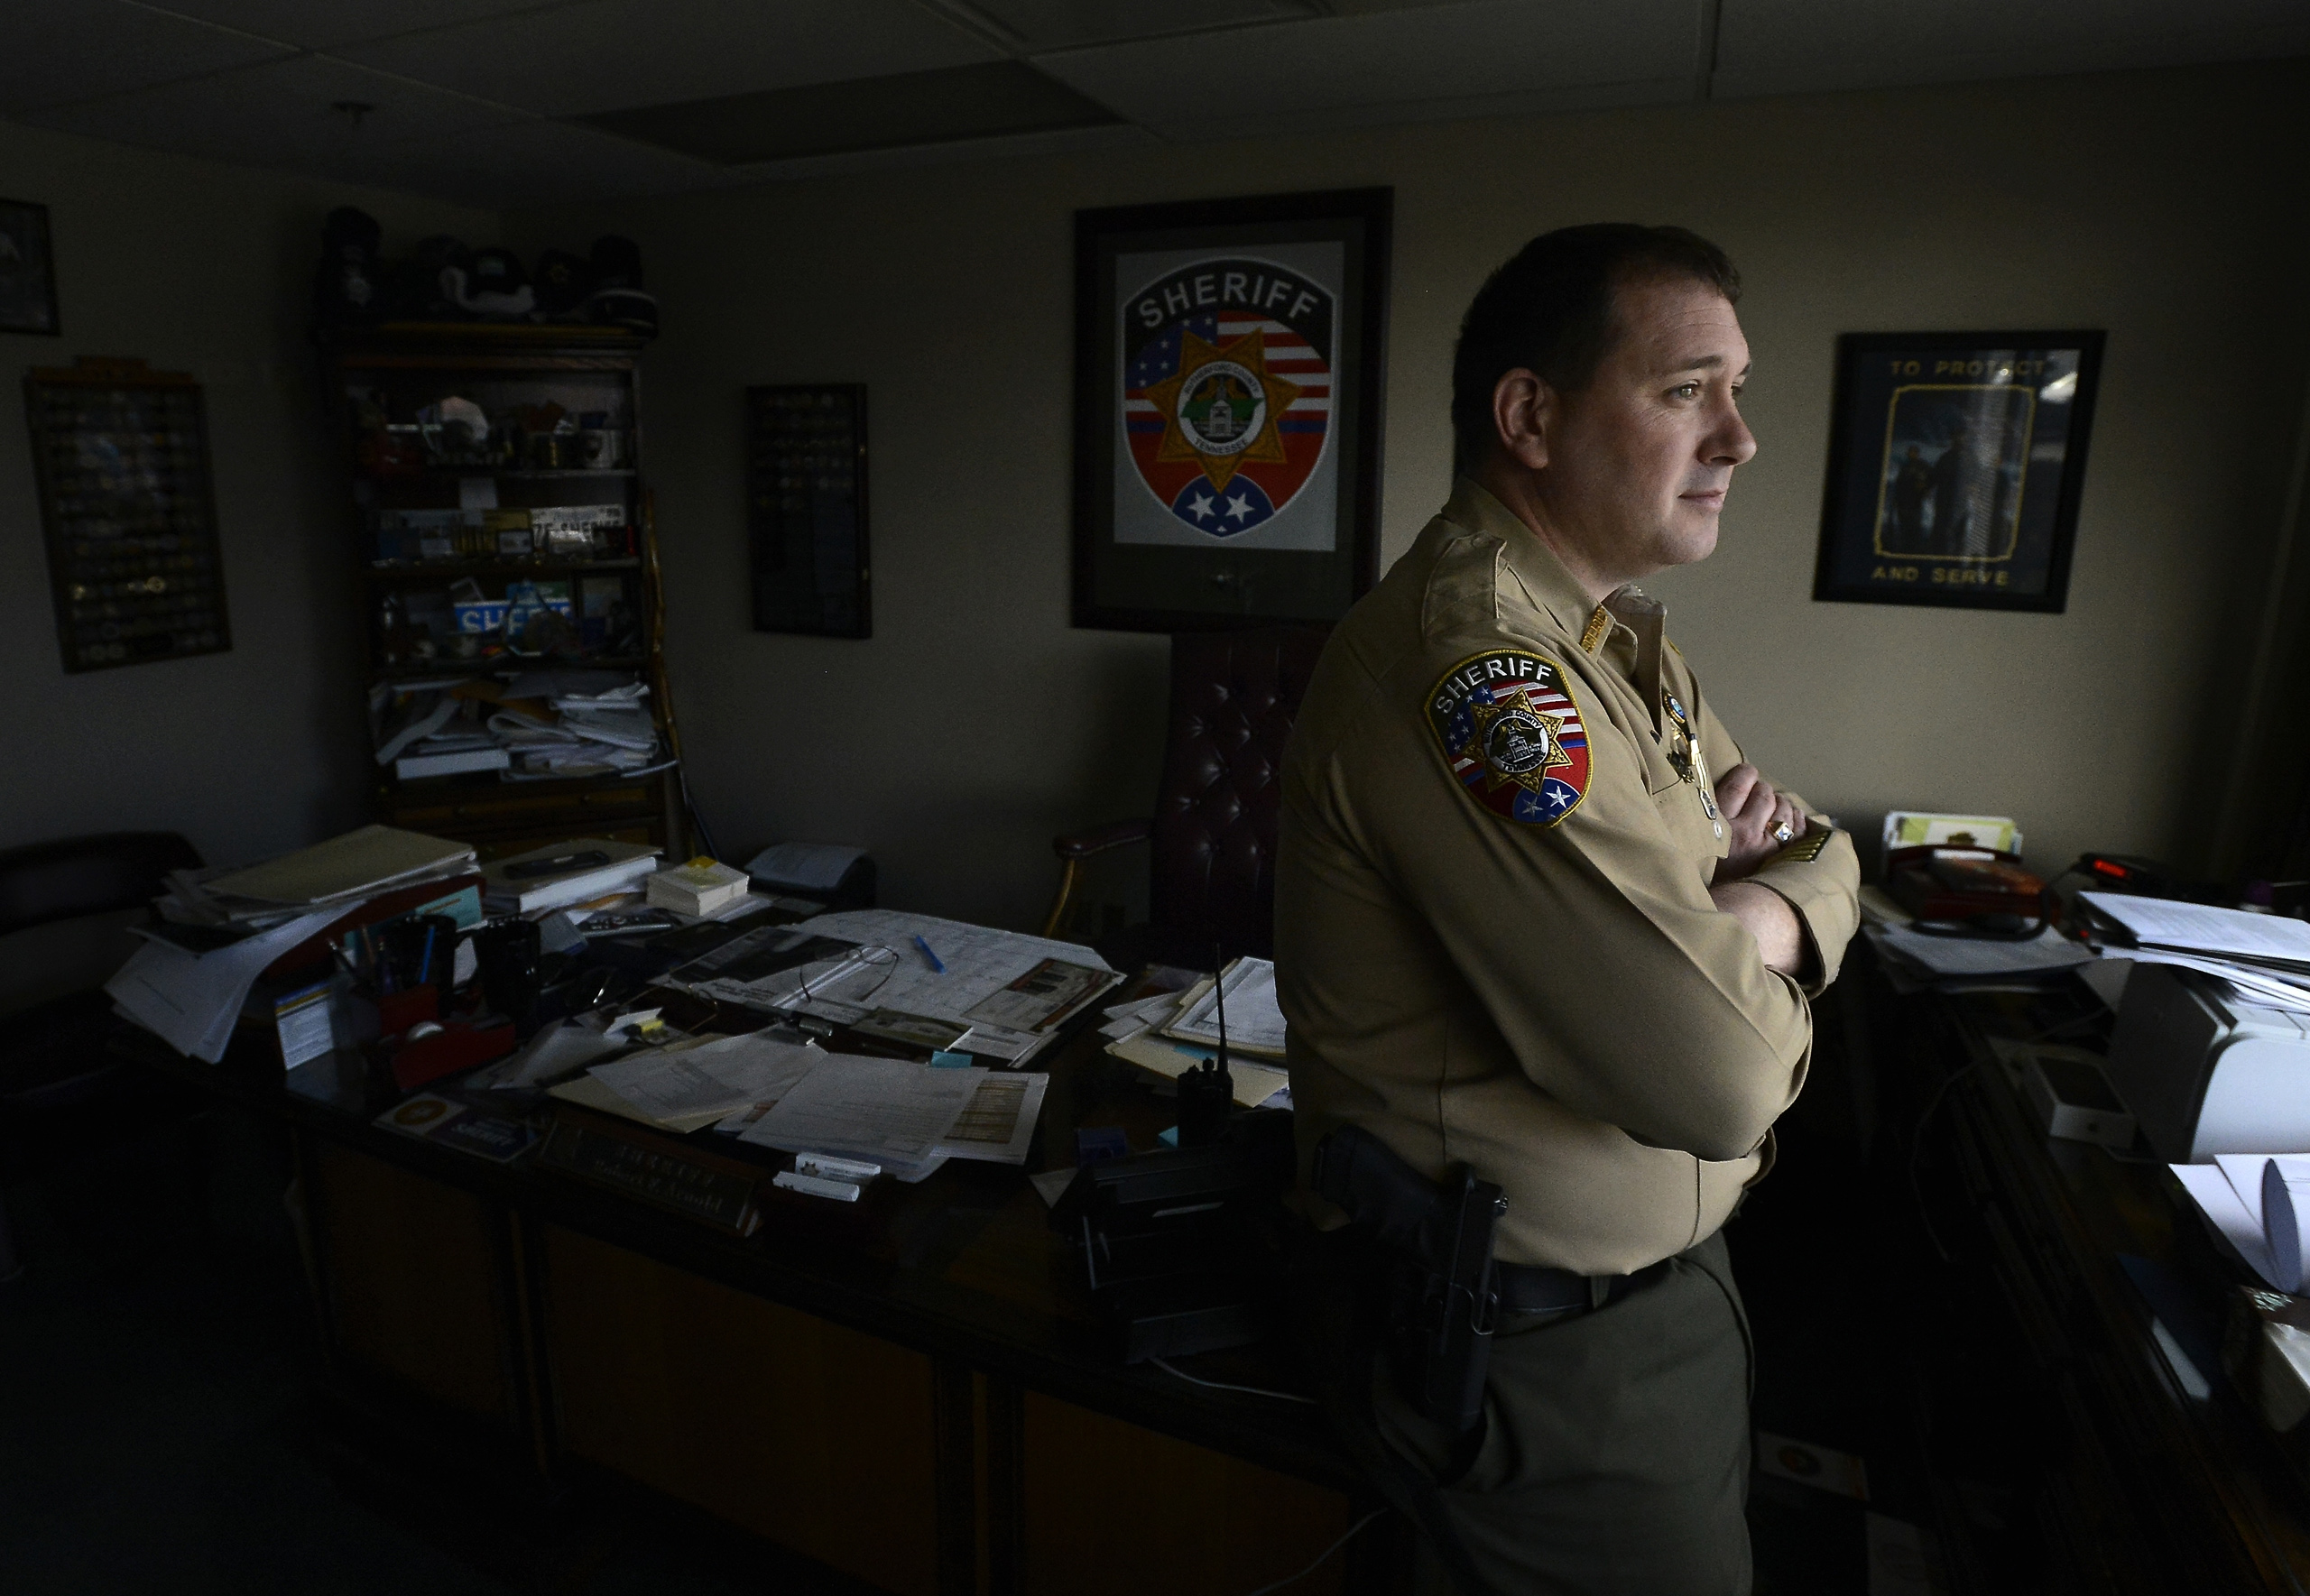 Rutherford County Sheriff Robert F. Arnold stands in his office in Murfreesboro, Tenn. on Jan. 27, 2016.